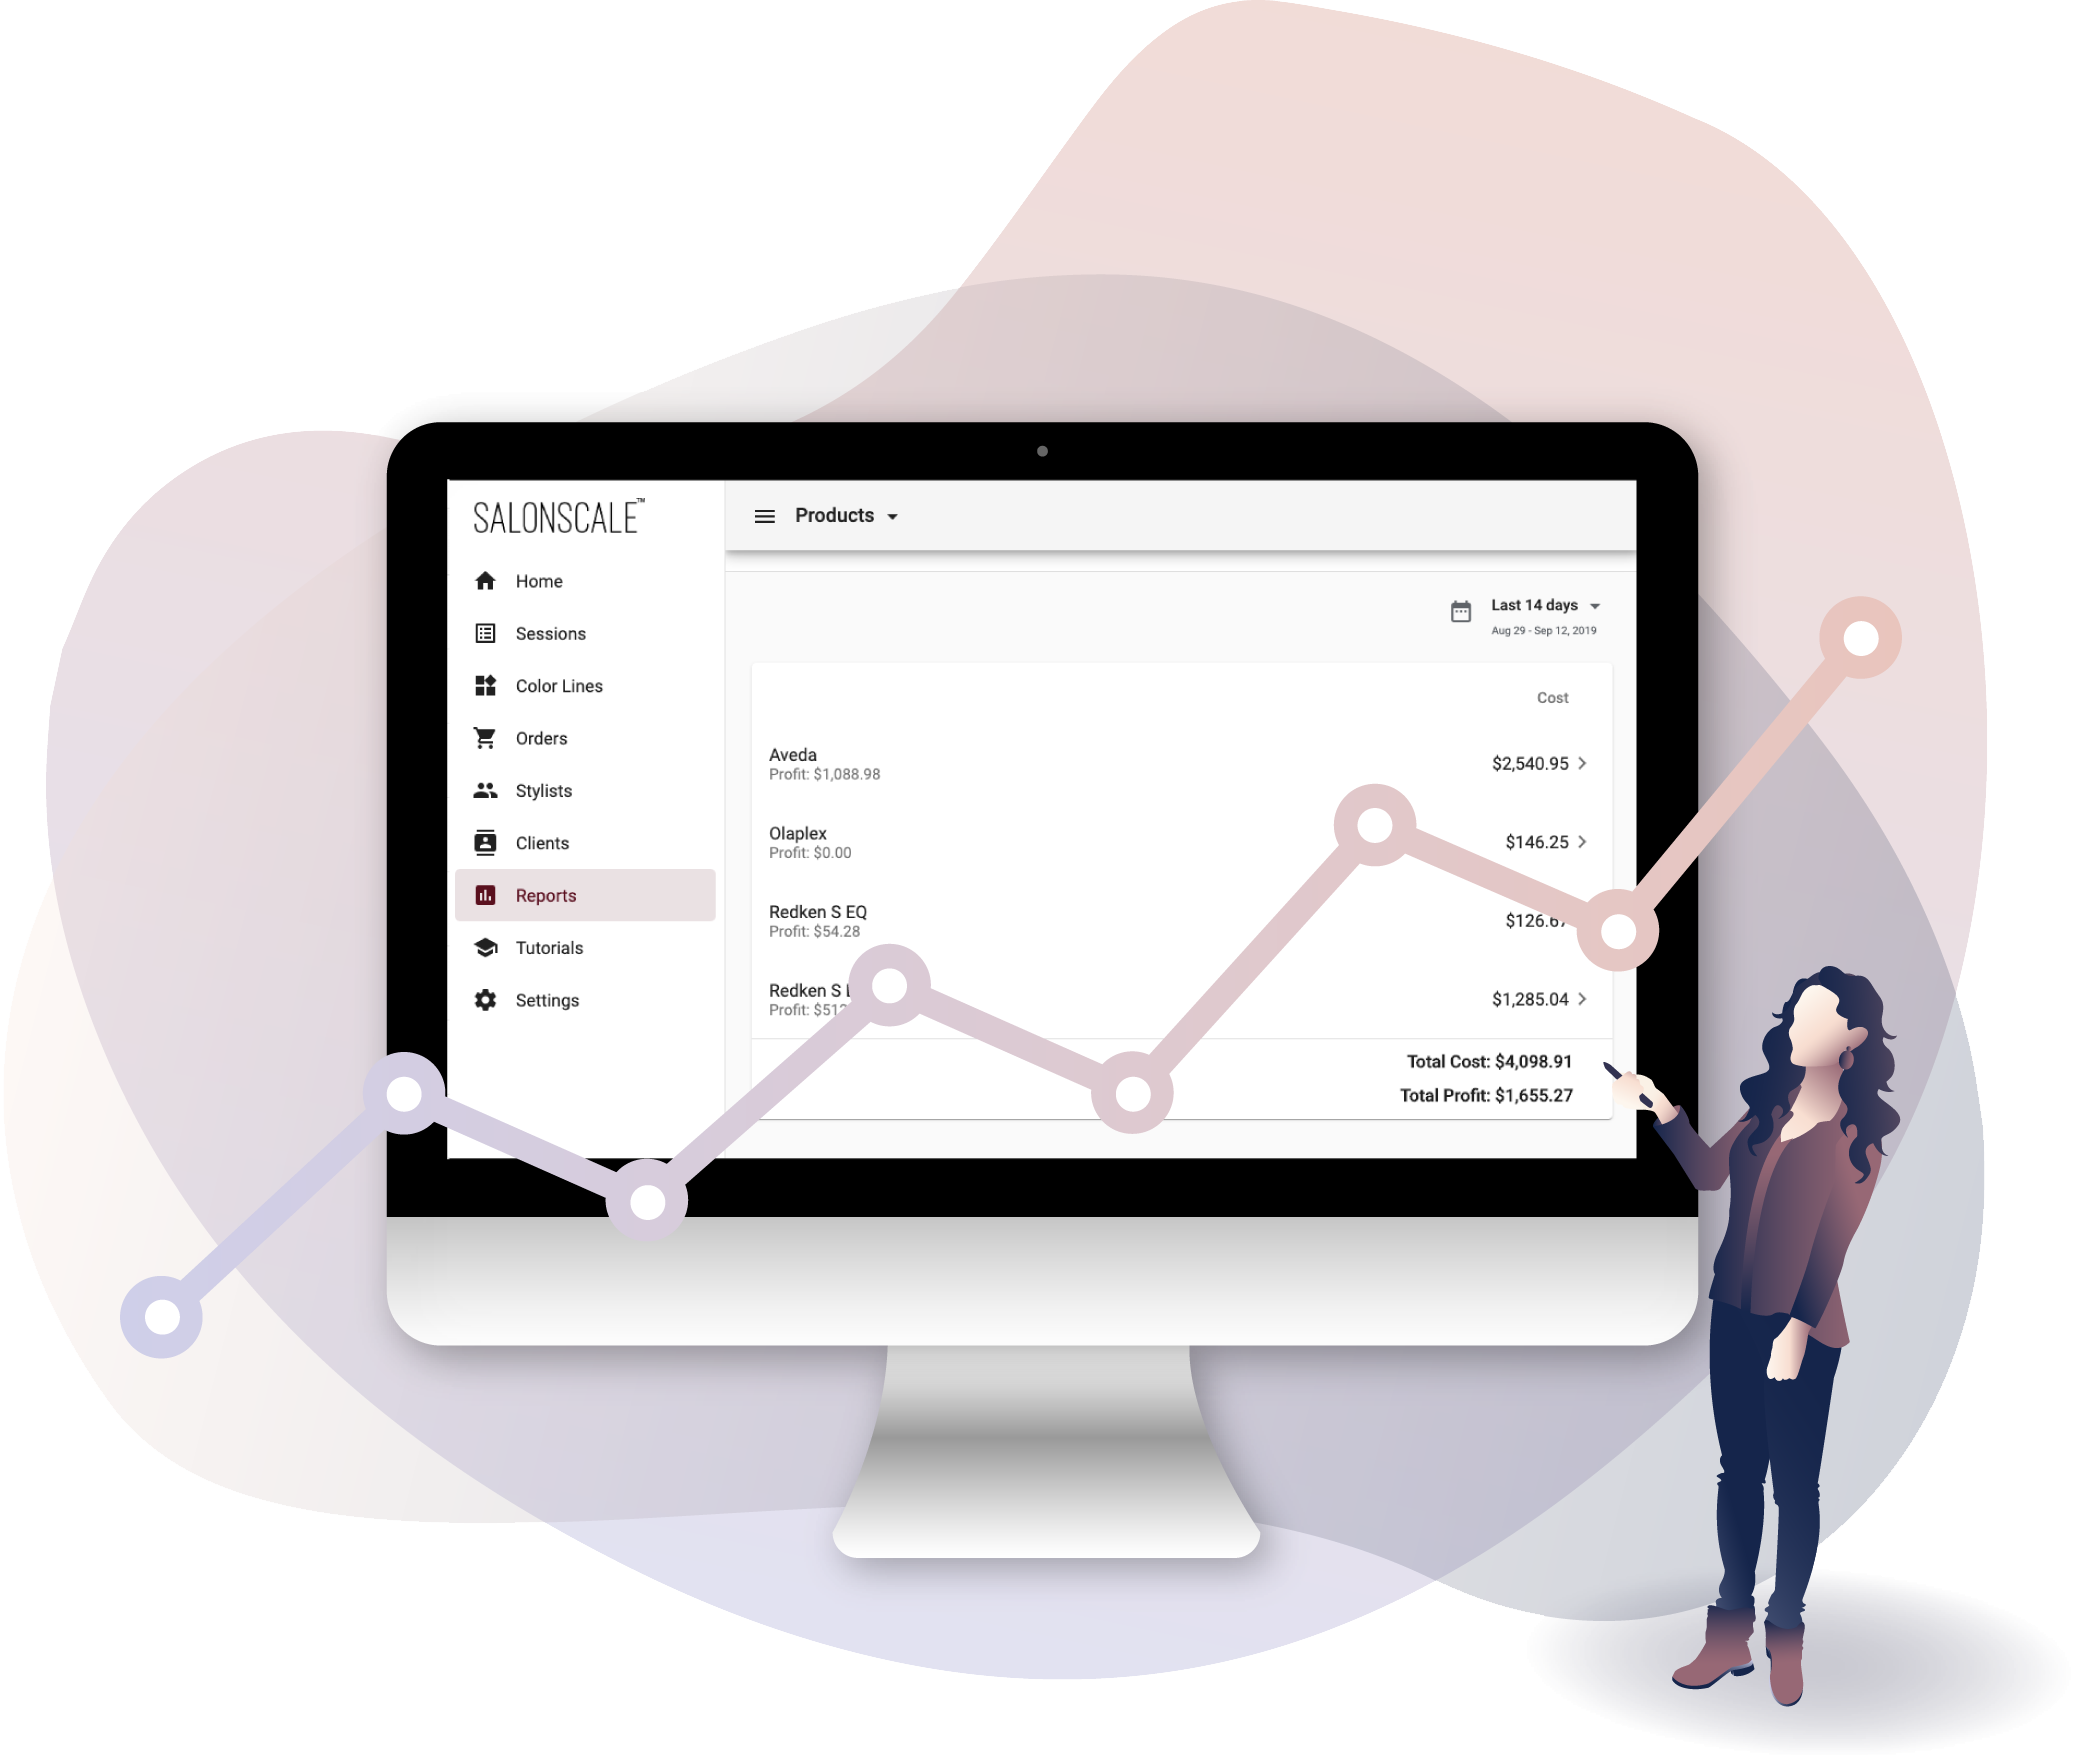 Track Your Color Costs to Gain Financial Freedom - On the desktop dashboard, download reports to track the amount of color used by brand so you can ditch counting empty color tubes and save time managing your inventory.